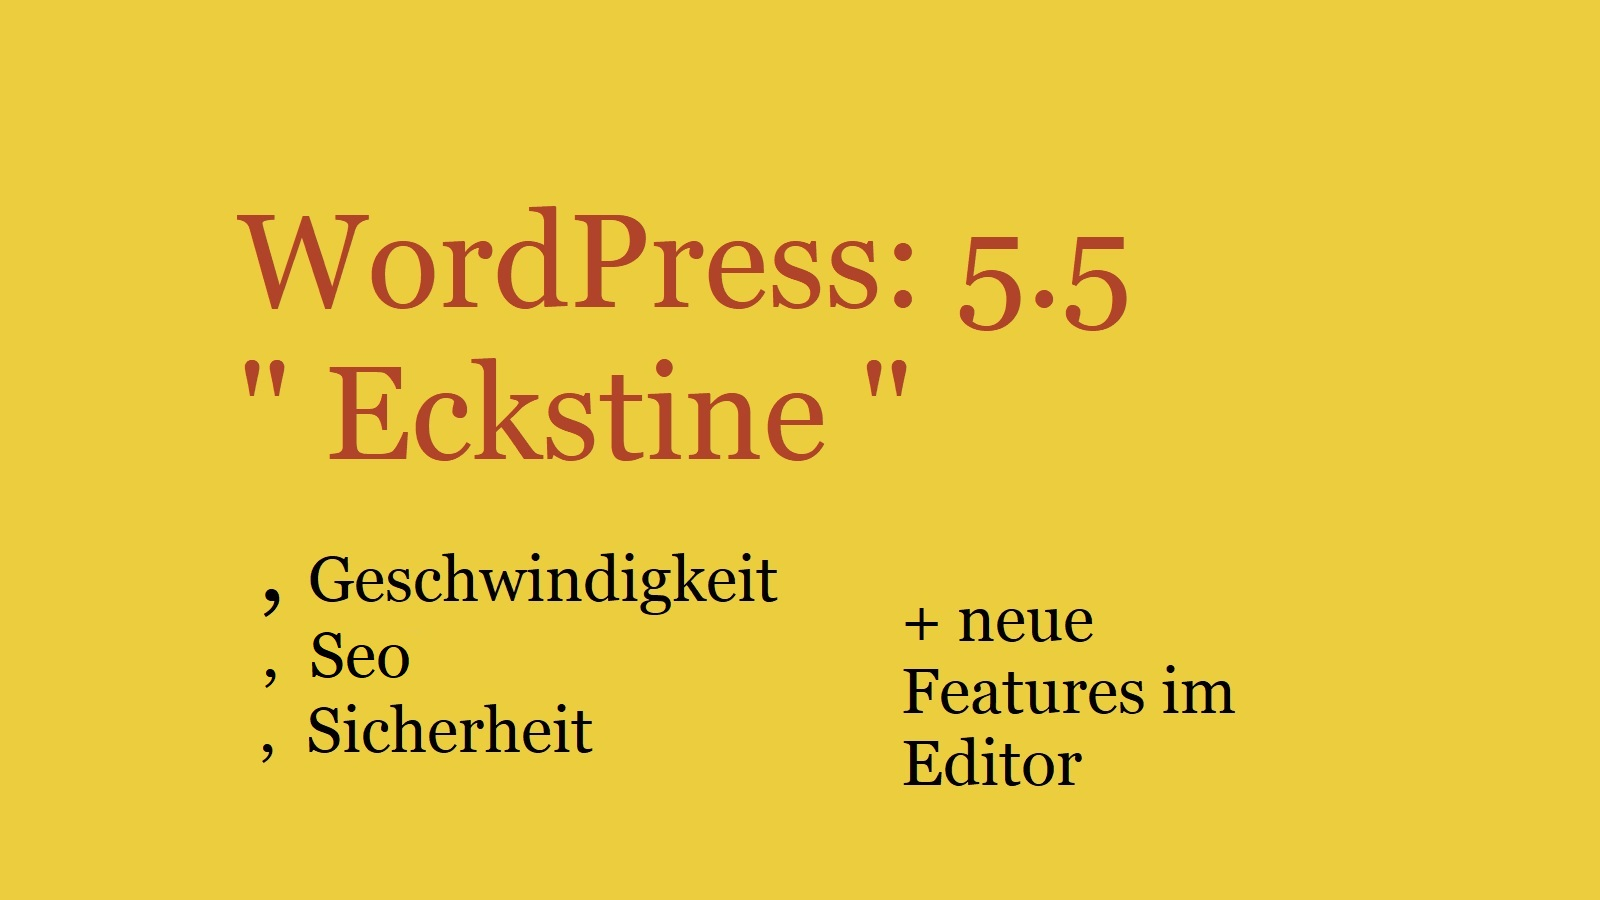 wordpress5.5-eckstine